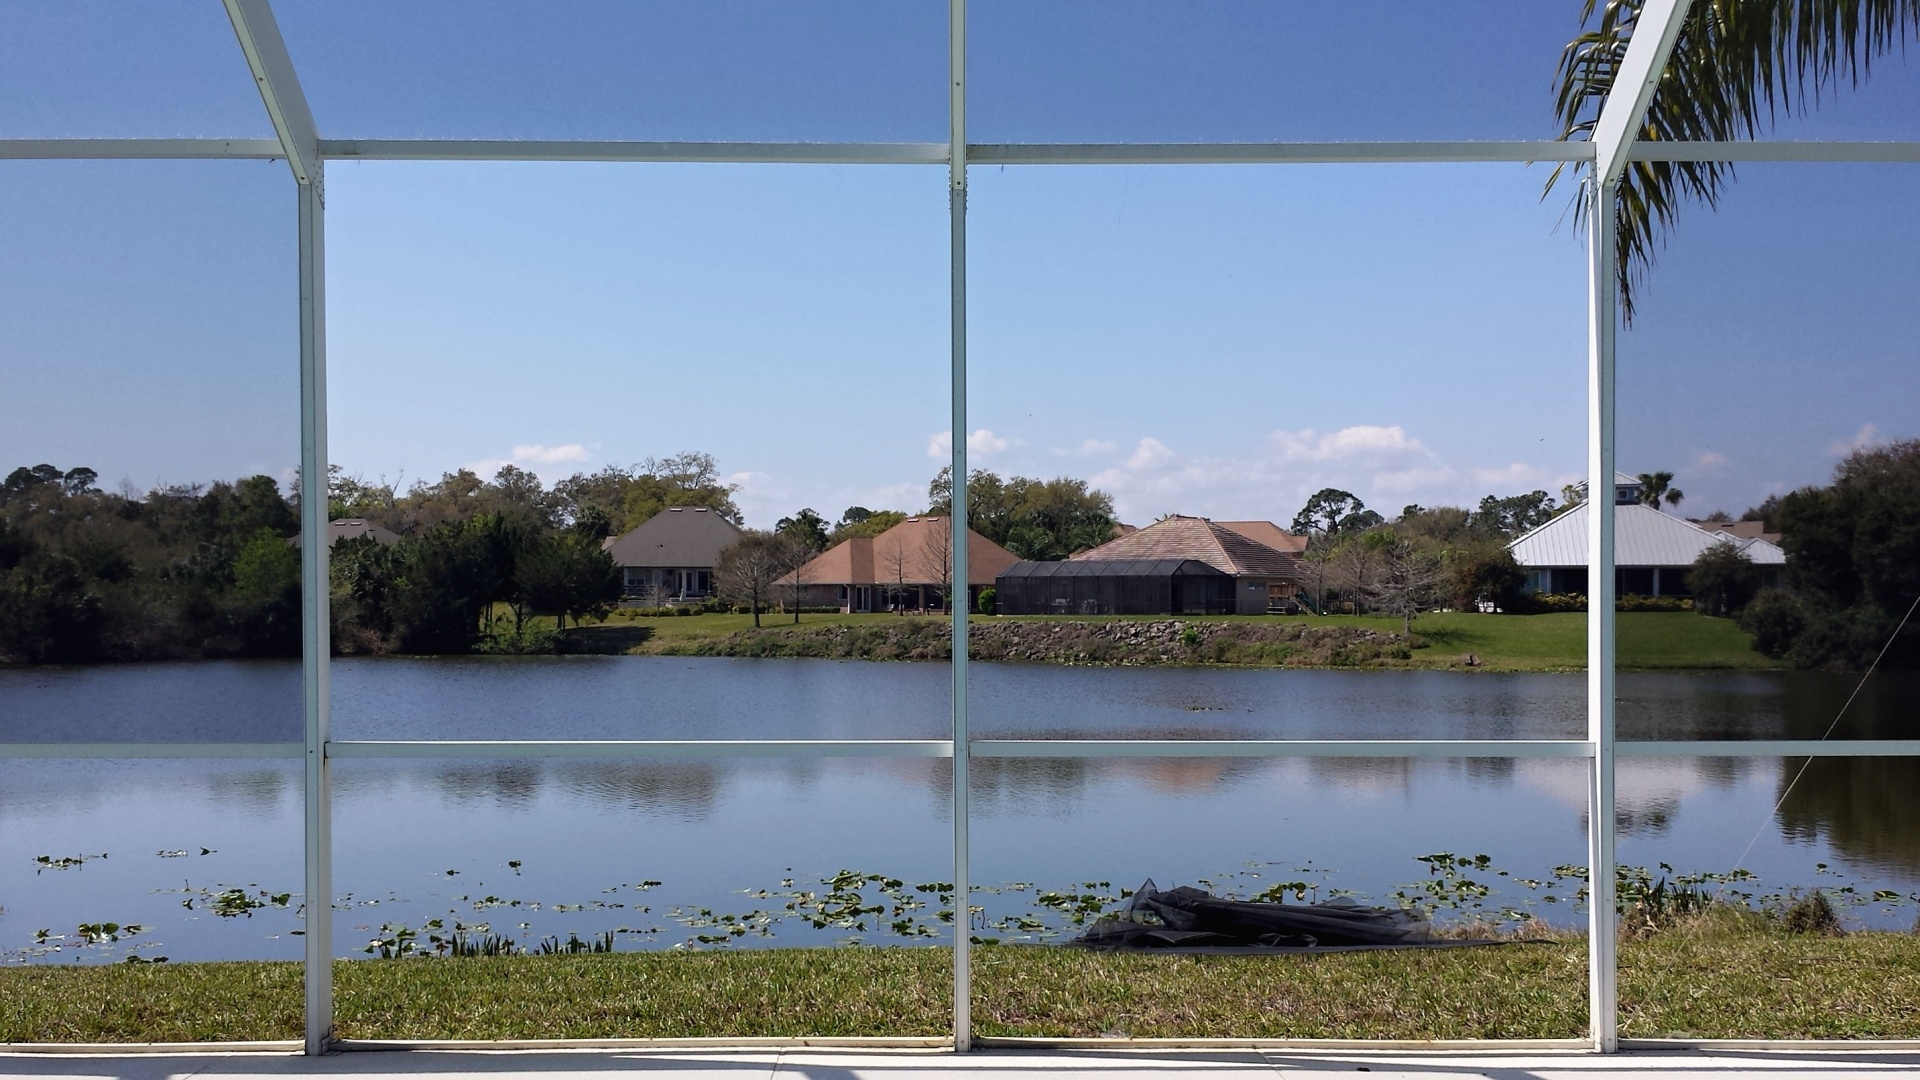 pool-screen-repair-ormond-beach-11-1080p.jpg